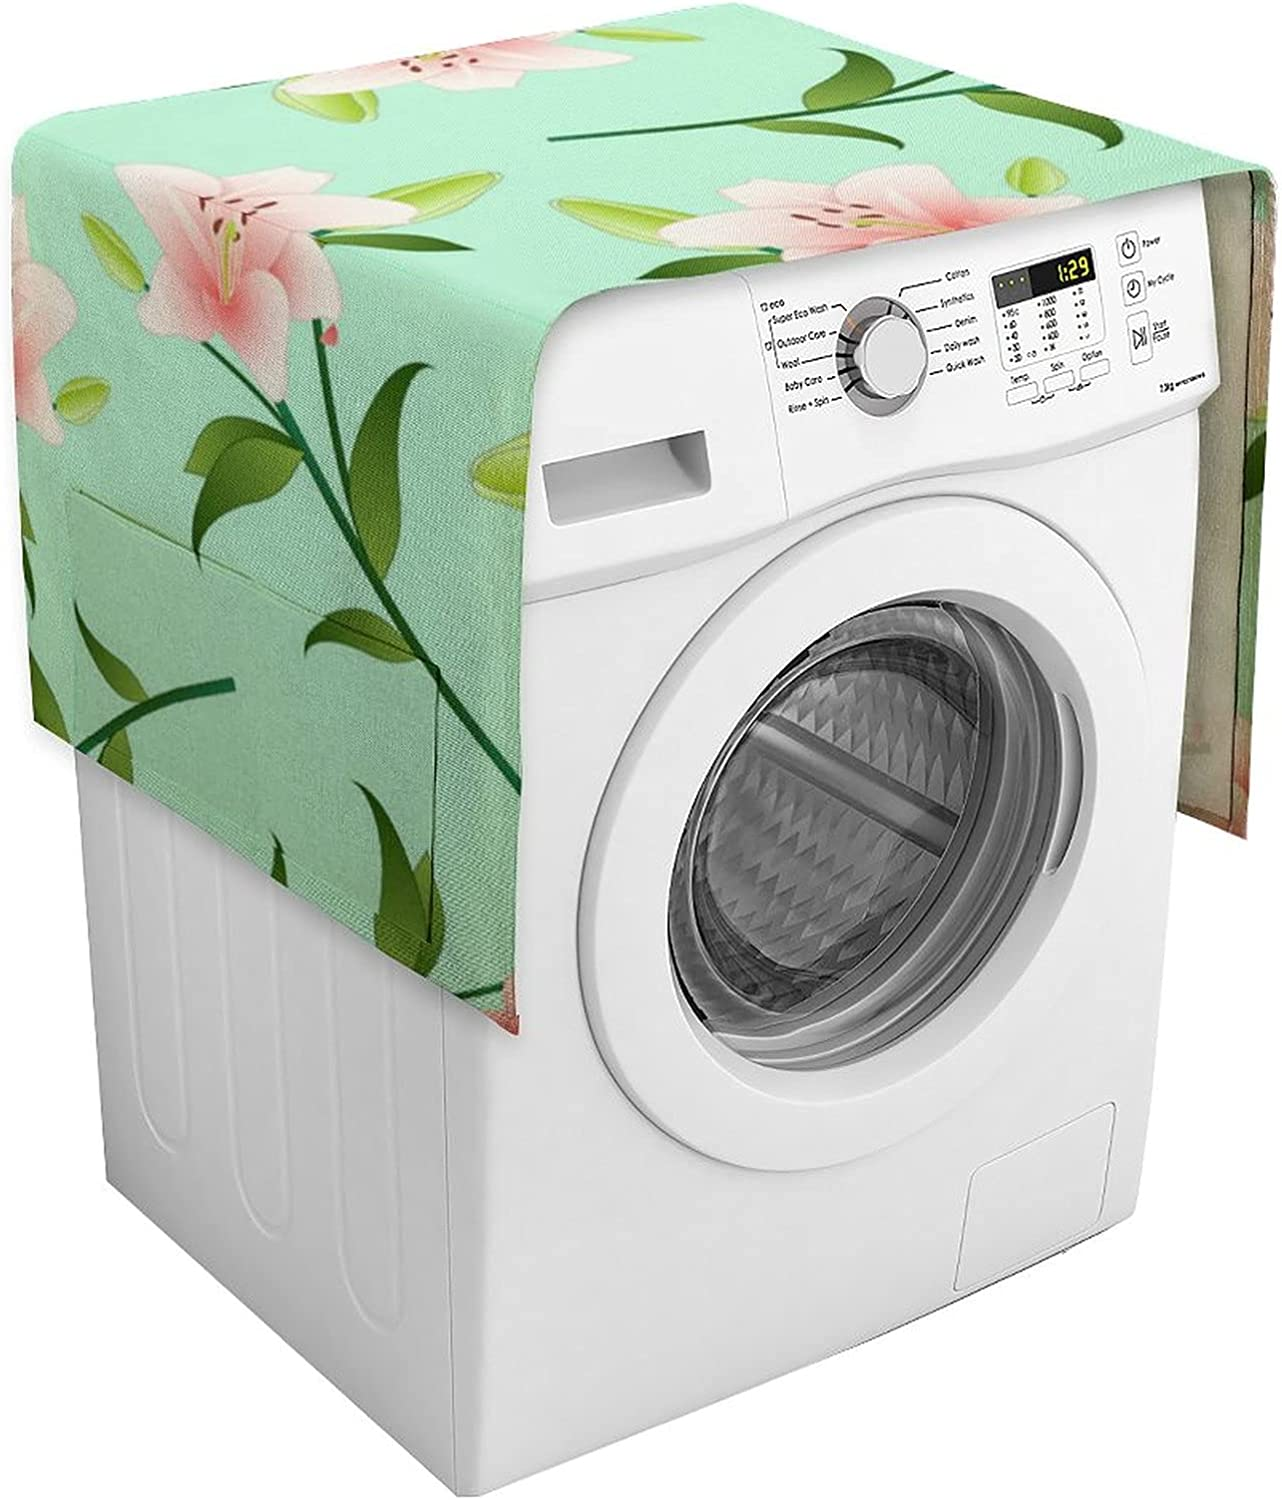 Multi-Purpose Washing Machine Covers Protector Washer Choice Limited time cheap sale Appliance